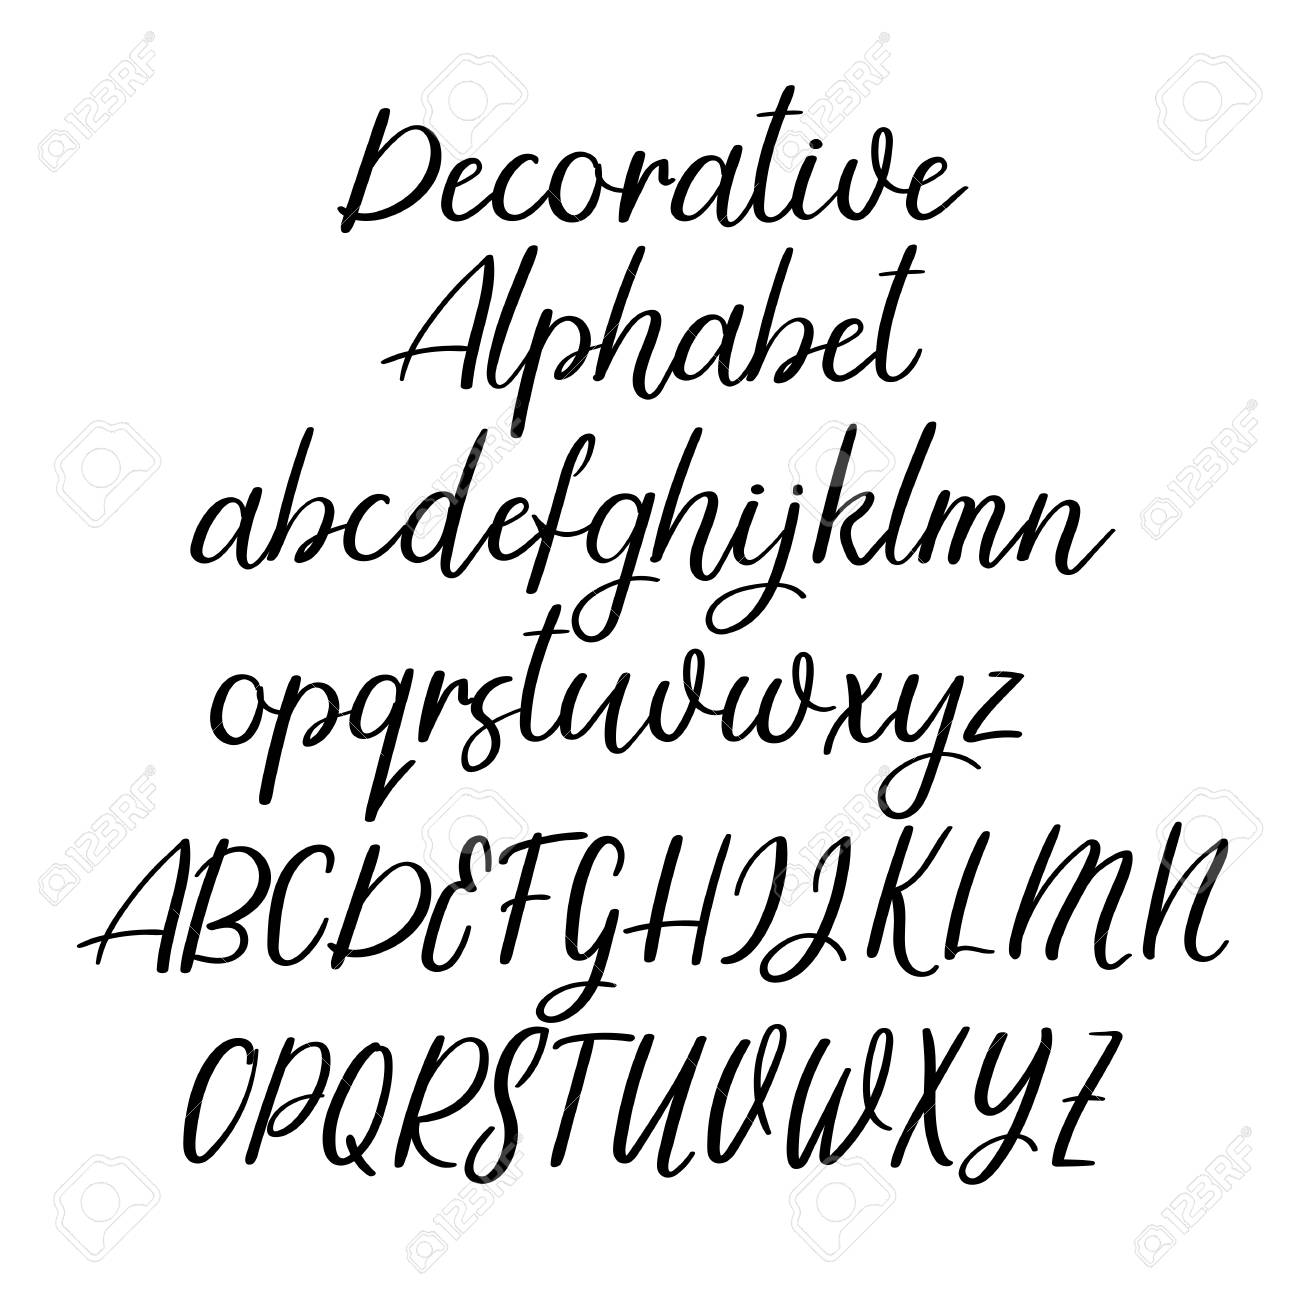 Modern Calligraphy Alphabet Handwritten Brush Letters Uppercase Lowercase Hand Lettering Font For